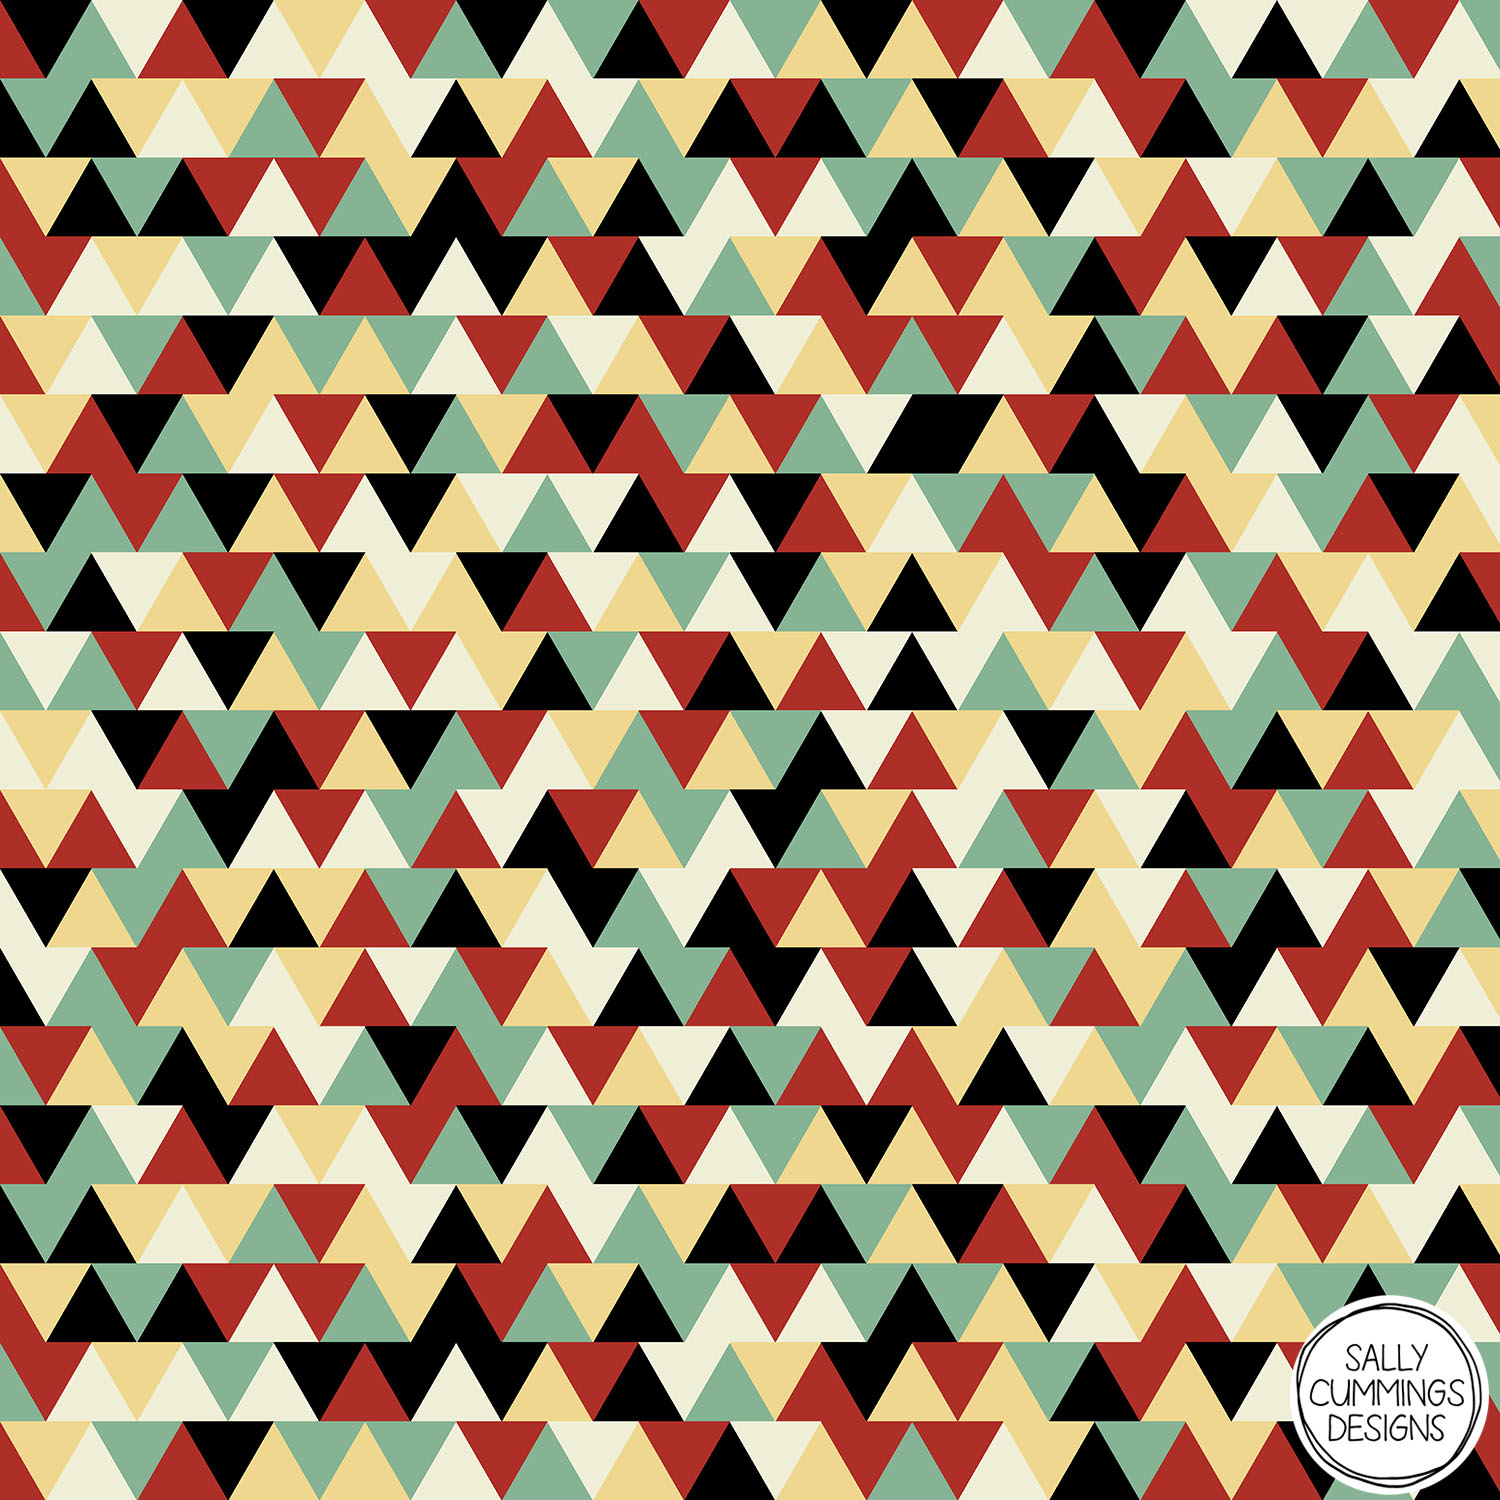 Sally Cummings Designs - Retro Linoleum Triangles Pattern